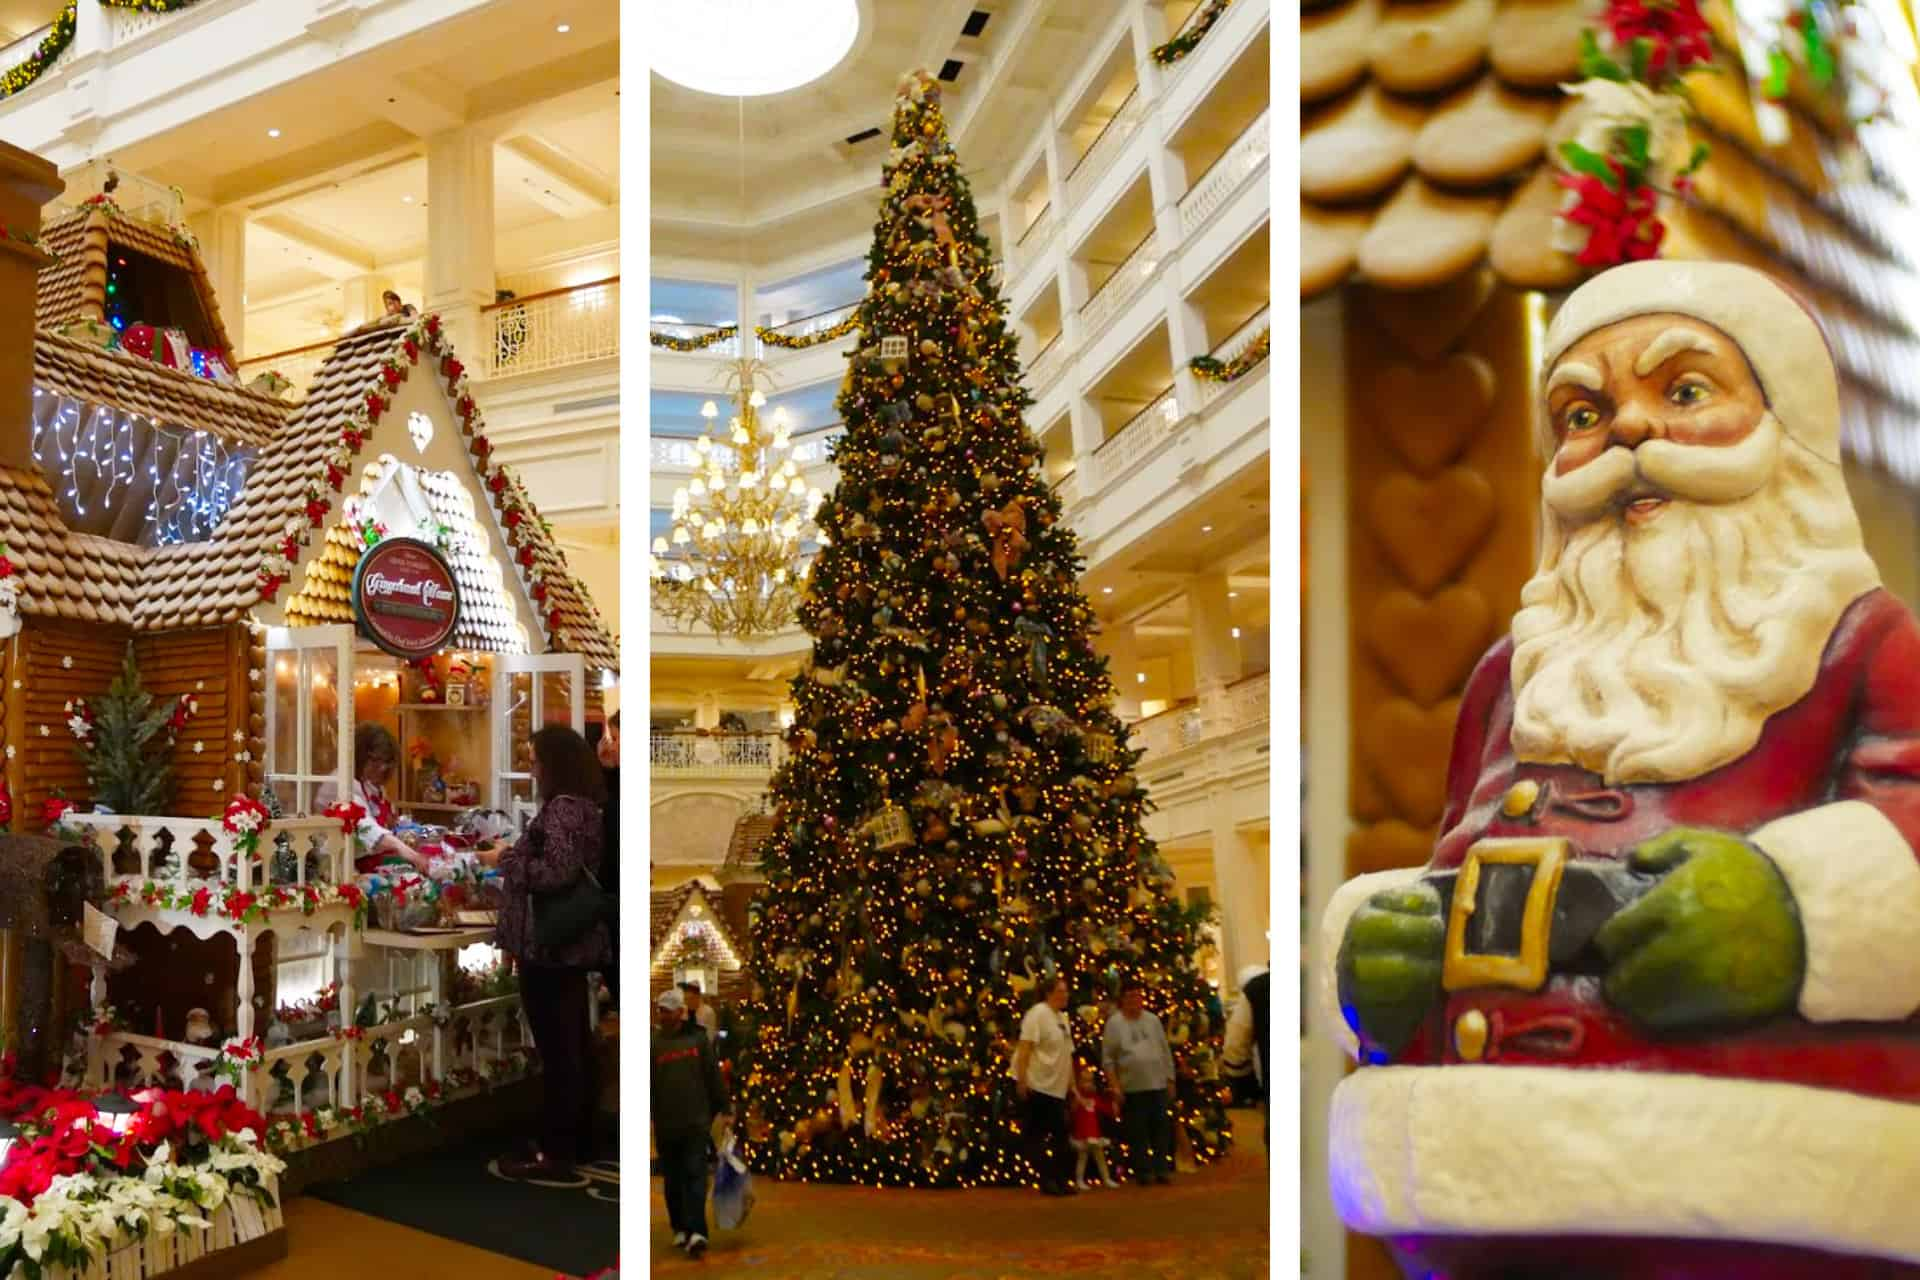 Festive Things to Do at the Grand Floridian at Christmas (2021) via @allamericanatlas